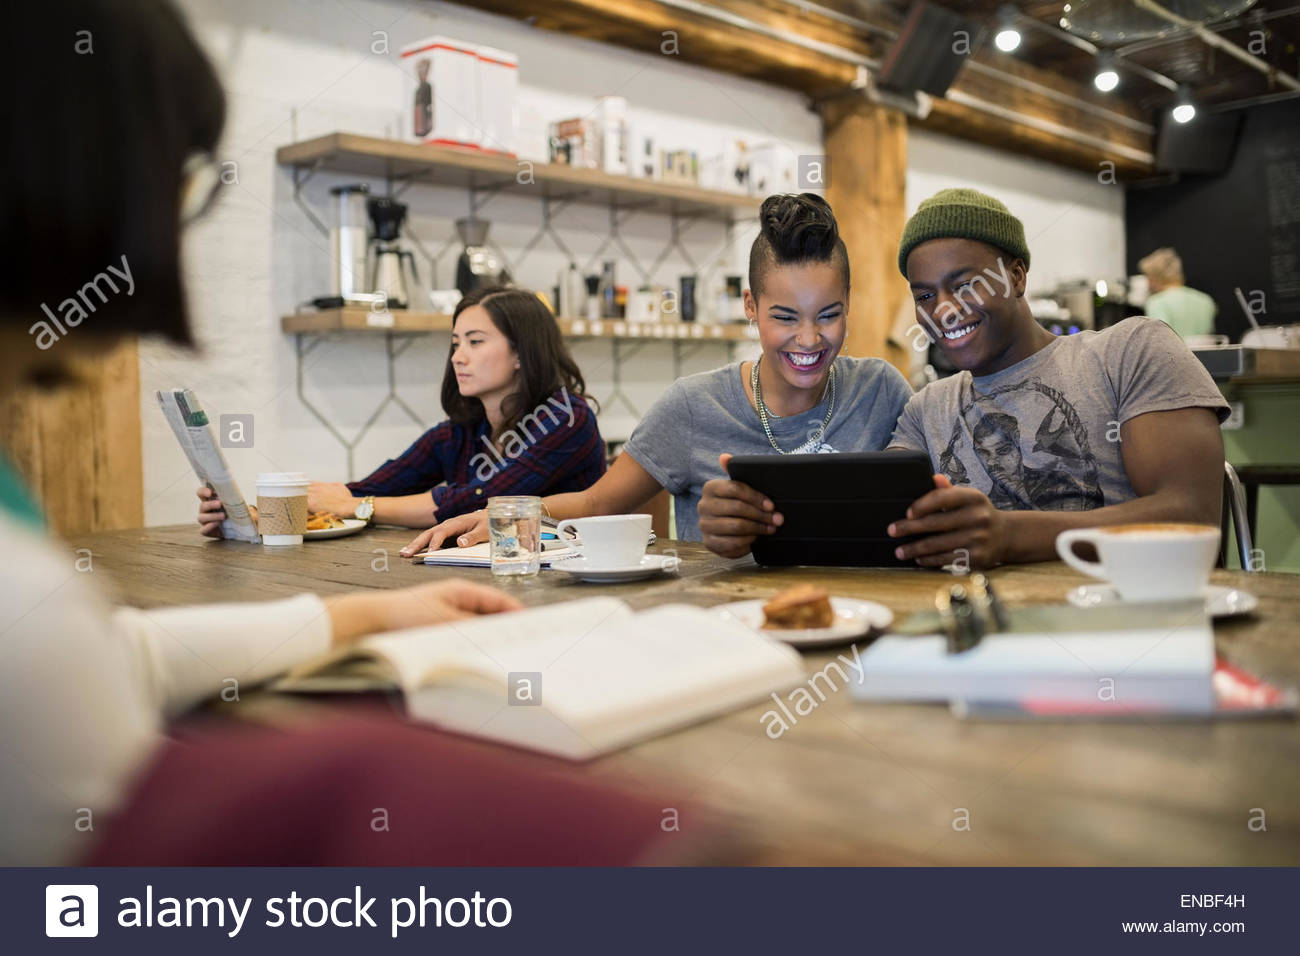 Smiling couple sharing digital tablet in cafe Photo Stock